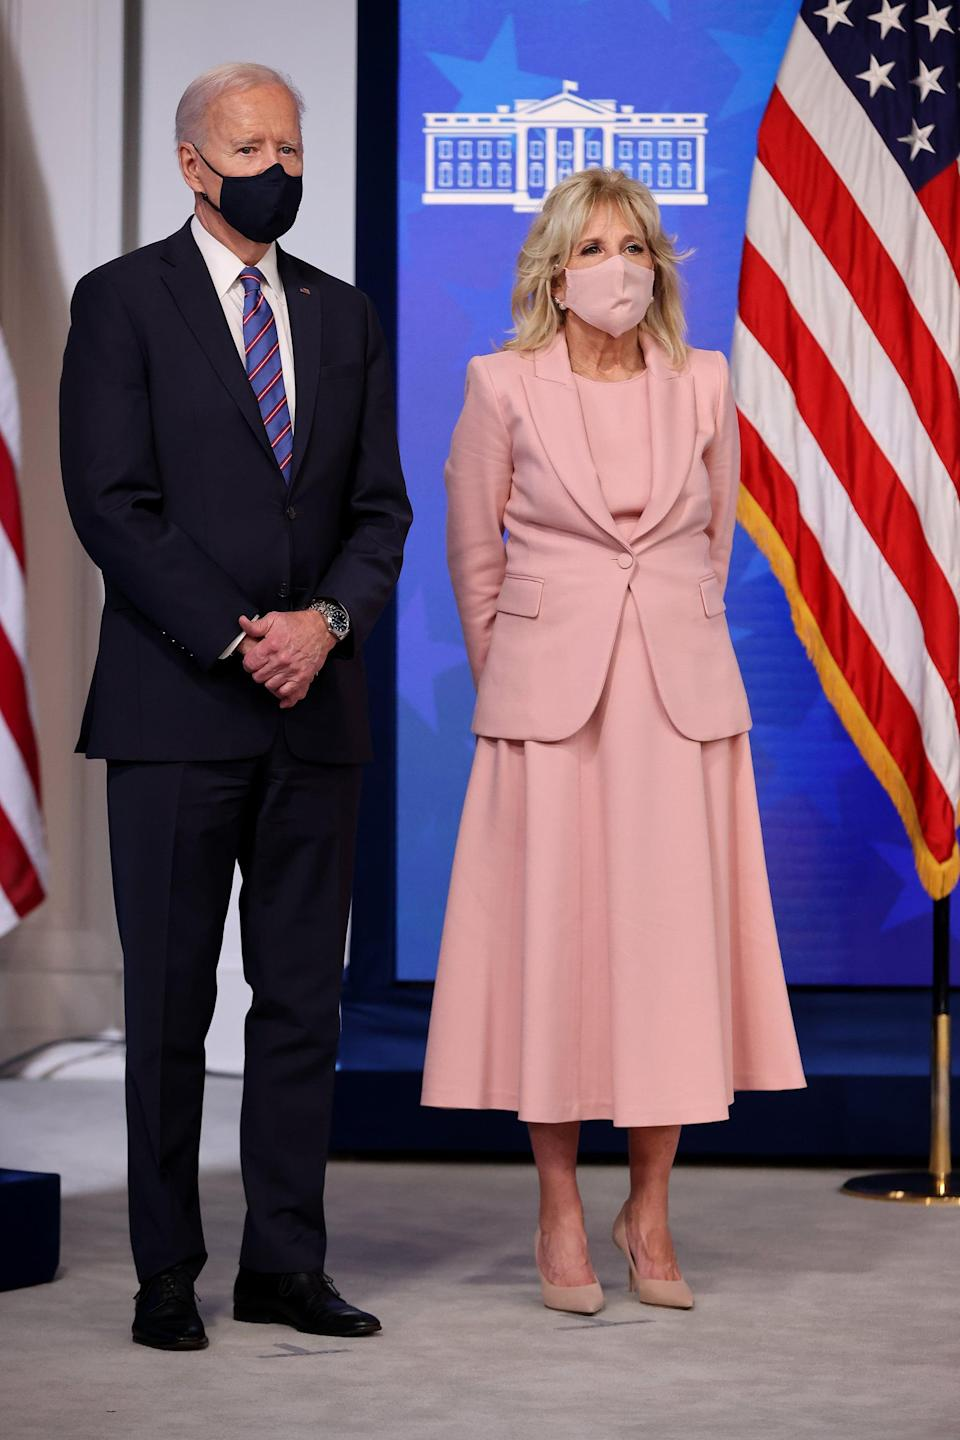 """<p>On Equal Pay Day in March 2021, Jill and Joe marked the occasion with an appearance in the Eisenhower Executive Office Building in Washington, DC. Jill chose a familiar shade of pink that she's worn before - perhaps due to its feminine tone on a day that is crucial for women - and finished the look with suede taupe Jimmy Choo heels and a <a href=""""https://www.popsugar.com/fashion/jill-biden-pearl-face-mask-lele-sadoughi-48224838"""" class=""""link rapid-noclick-resp"""" rel=""""nofollow noopener"""" target=""""_blank"""" data-ylk=""""slk:Lele Sadoughi pearl face mask"""">Lele Sadoughi pearl face mask</a> that she owns in three colors. Lisa """"Lele"""" Sadoughi started her women-owned accessories brand after working for Tory Burch, and then eventually launching her first line for J.Crew in 2006. The pack of face masks Jill has picked up reflect the significance behind pearls and their <a href=""""https://www.popsugar.com/fashion/kamala-harris-inauguration-chucks-pearls-trend-48116794"""" class=""""link rapid-noclick-resp"""" rel=""""nofollow noopener"""" target=""""_blank"""" data-ylk=""""slk:tie-in to the celebration of womanhood"""">tie-in to the celebration of womanhood</a>.</p>"""